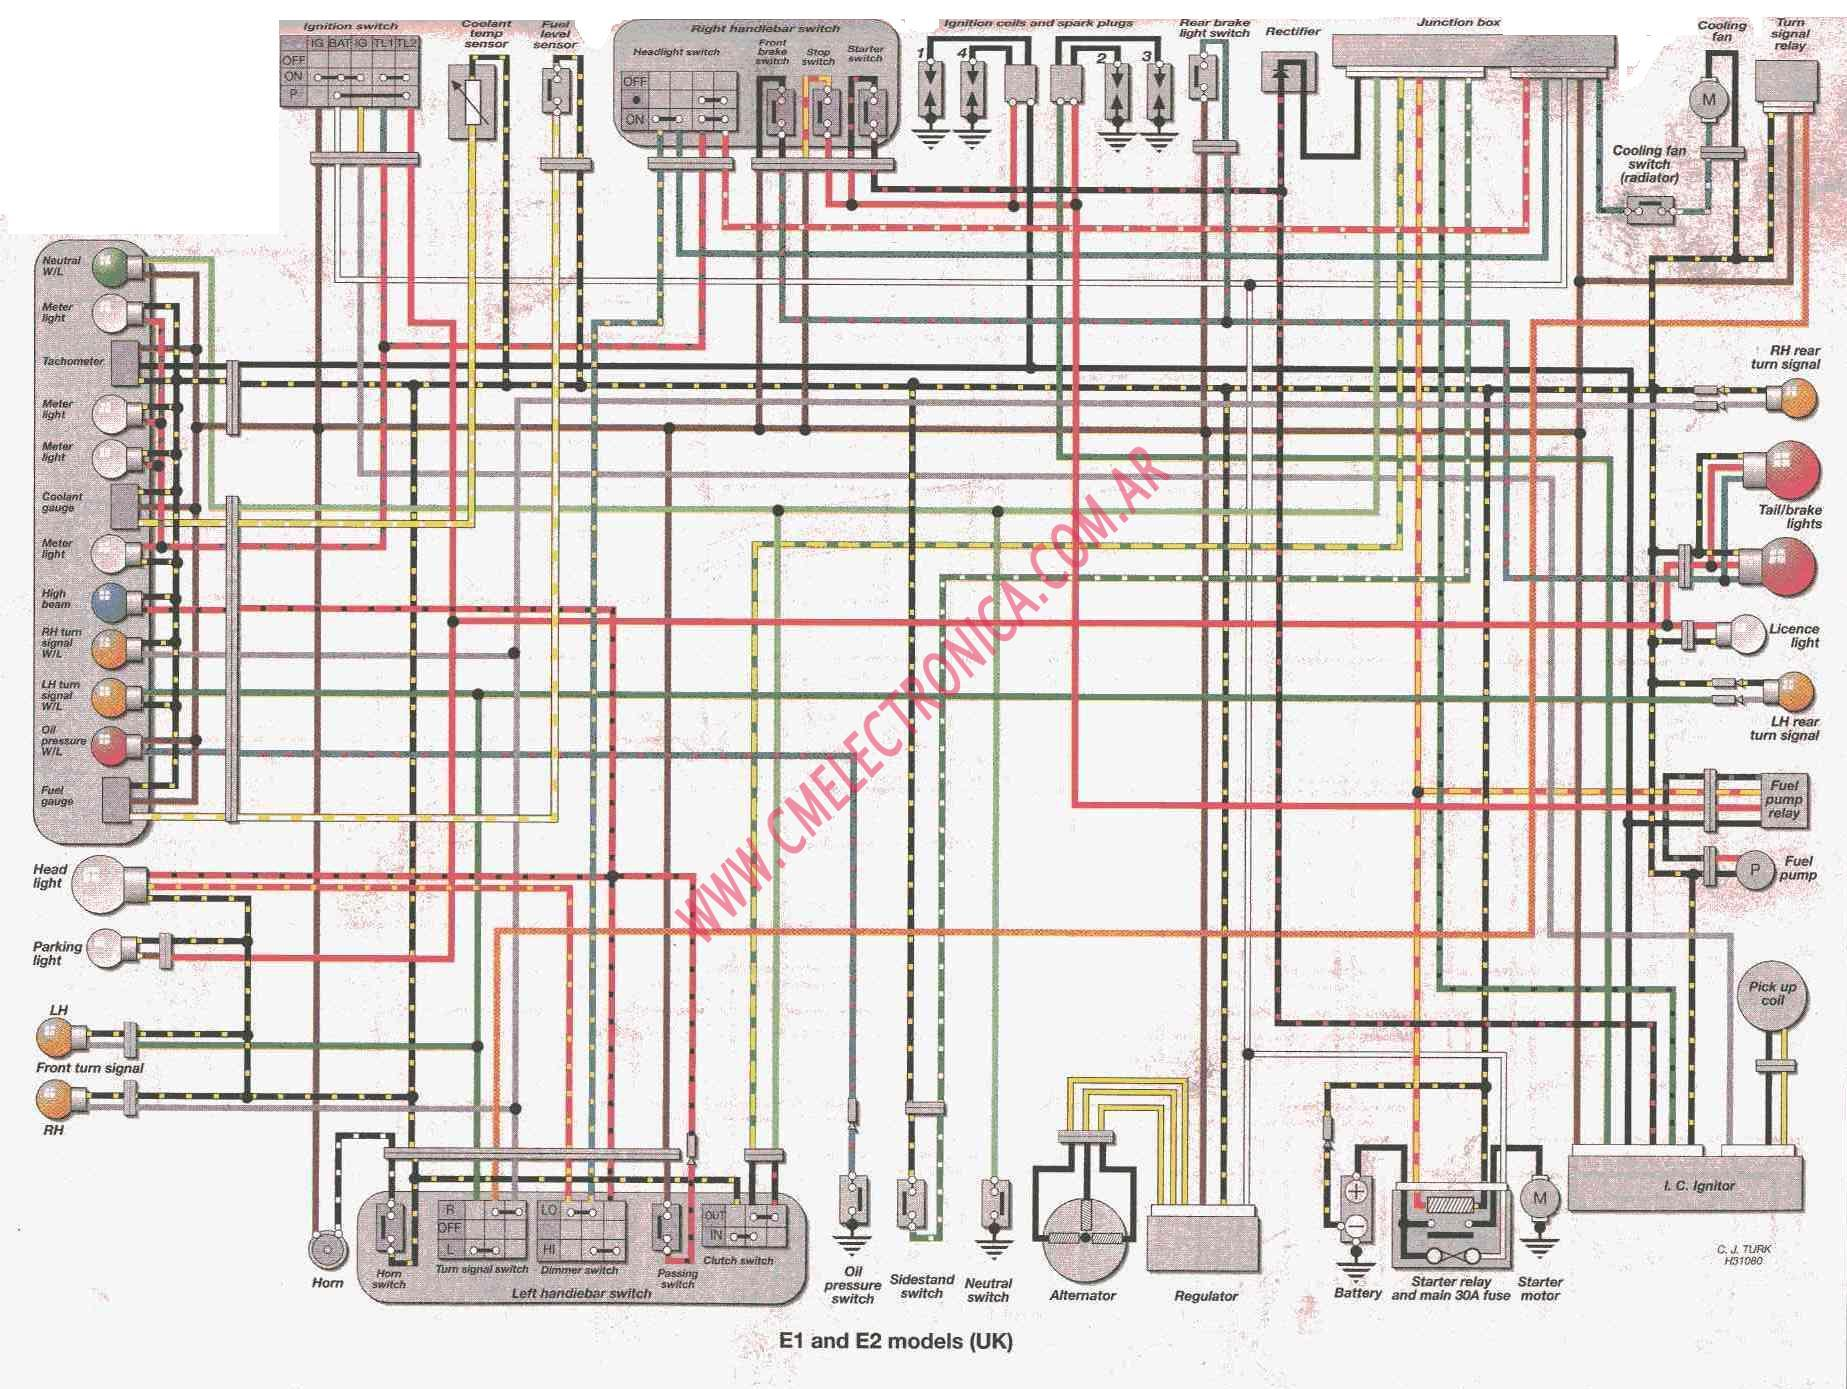 hight resolution of 04 gsxr 600 wiring diagrams free download diagram images gallery gsxr 600 srad wiring diagram wiring library rh 76 global colors de